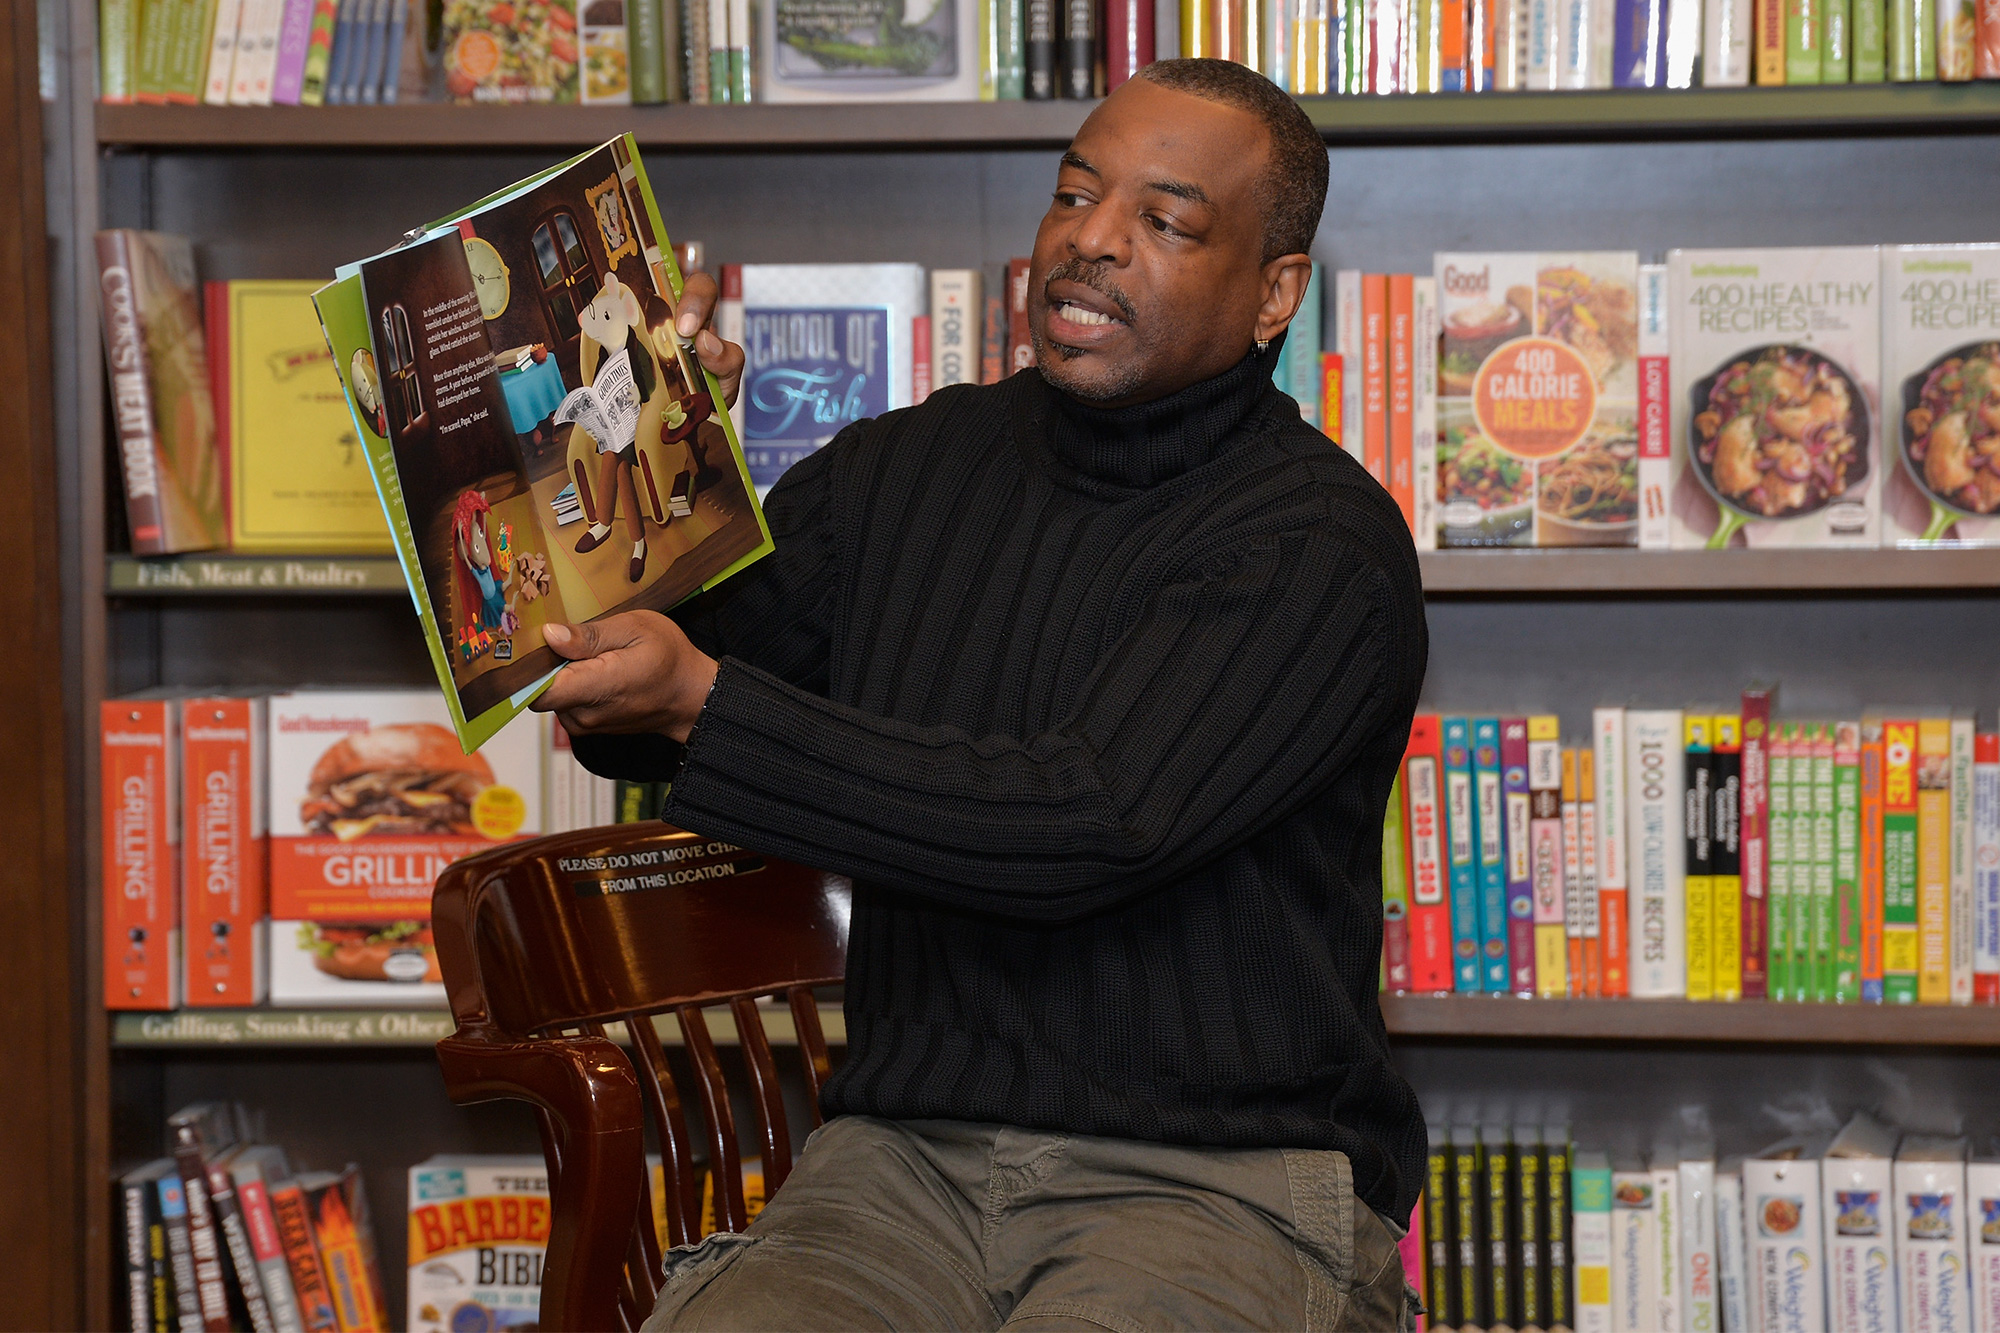 LeVar Burton Launches Book Club on Reading App, Fable, With Titles by James Baldwin, Octavia Butler, and Jesmyn Ward